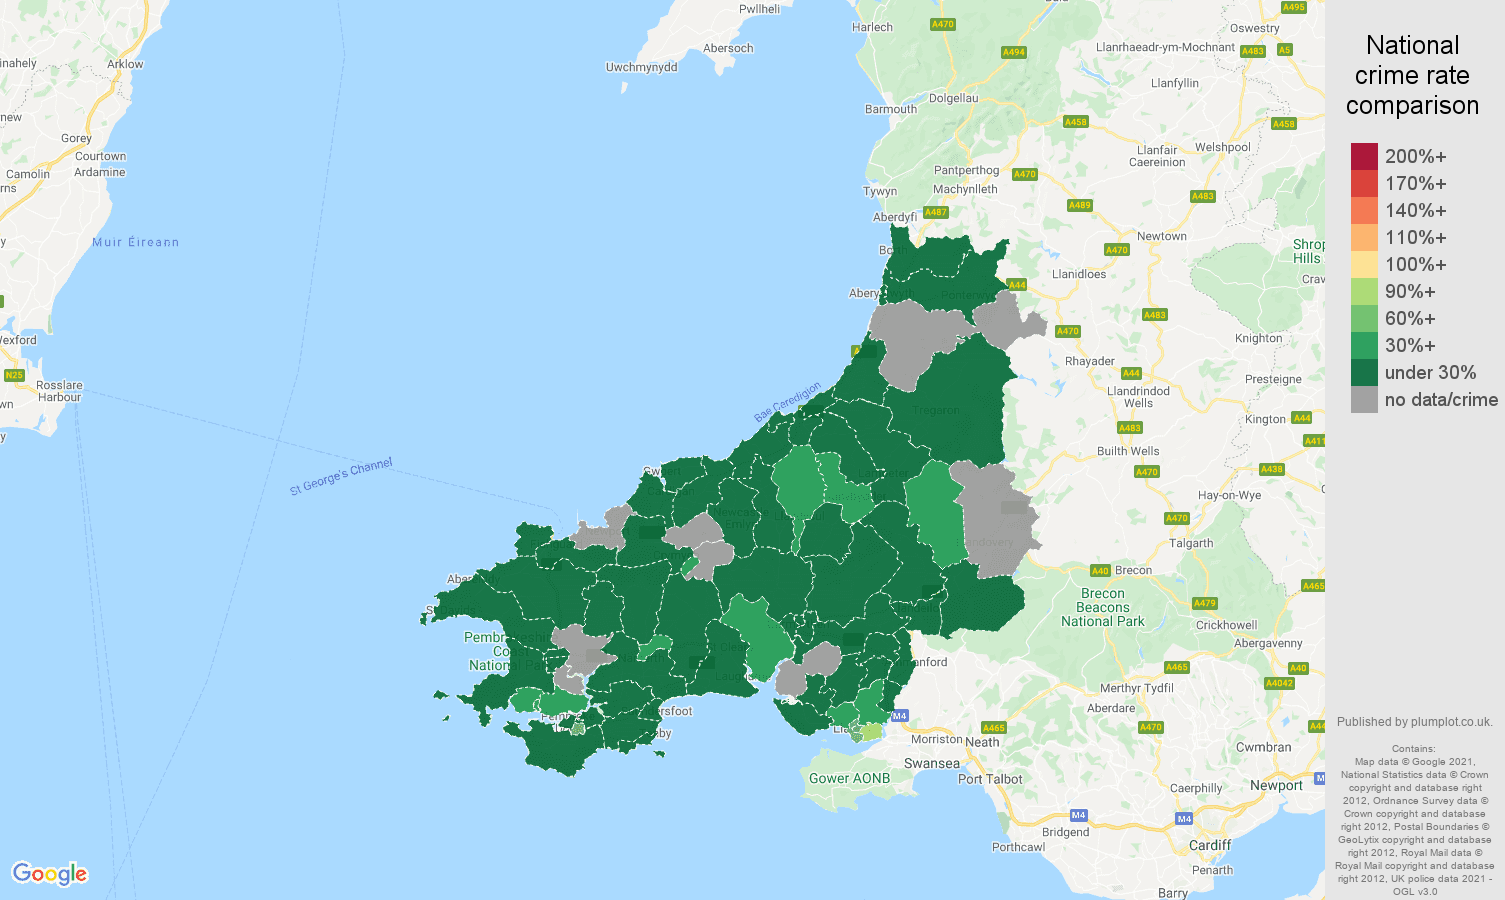 Dyfed vehicle crime rate comparison map